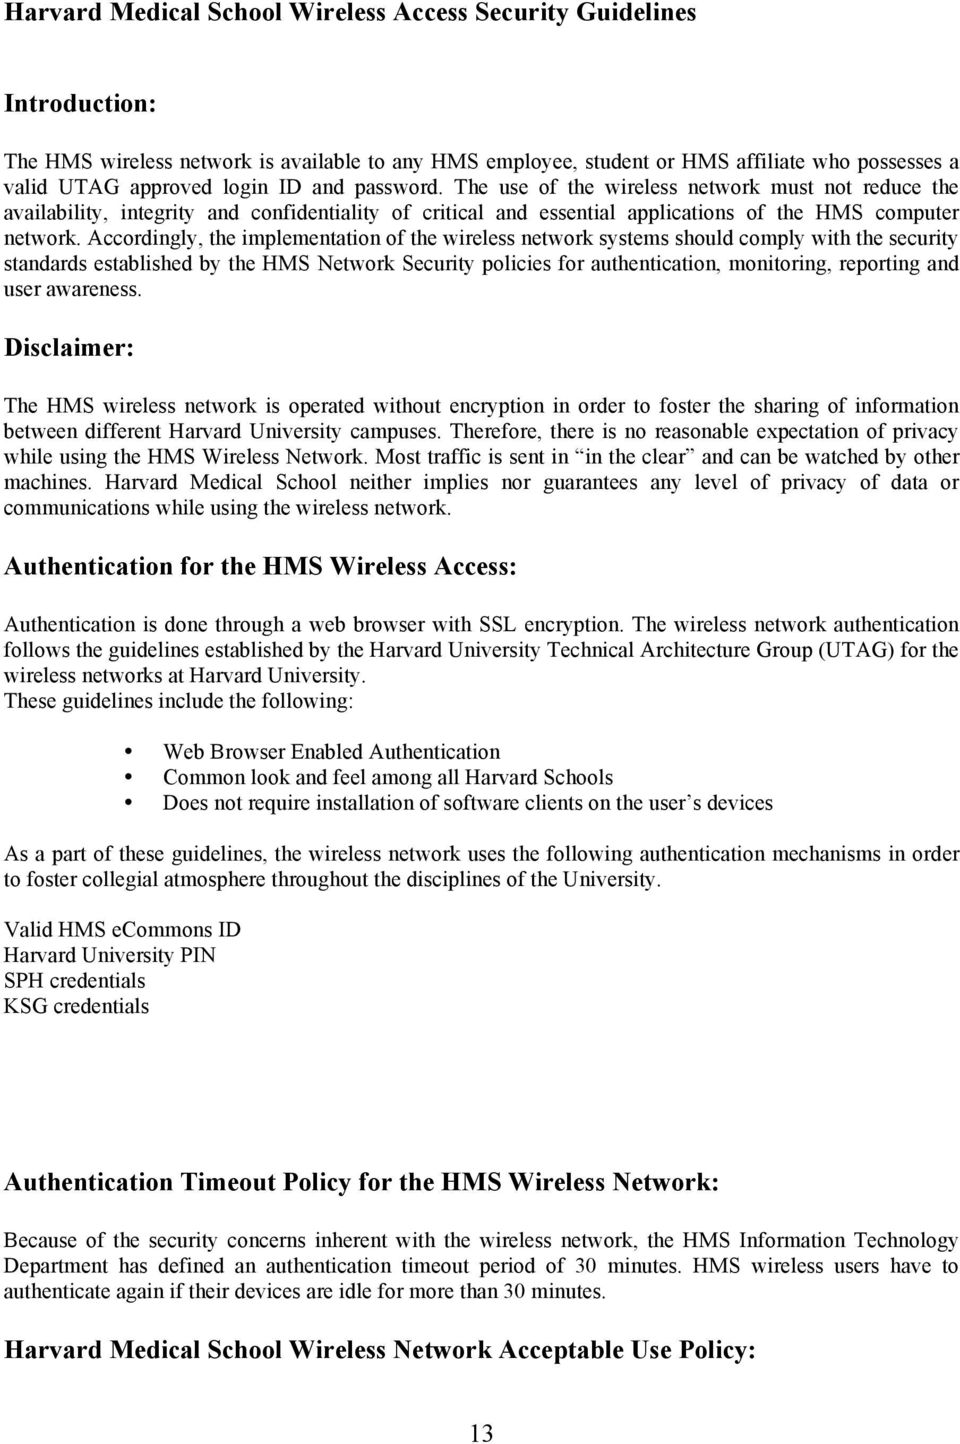 Accordingly, the implementation of the wireless network systems should comply with the security standards established by the HMS Network Security policies for authentication, monitoring, reporting